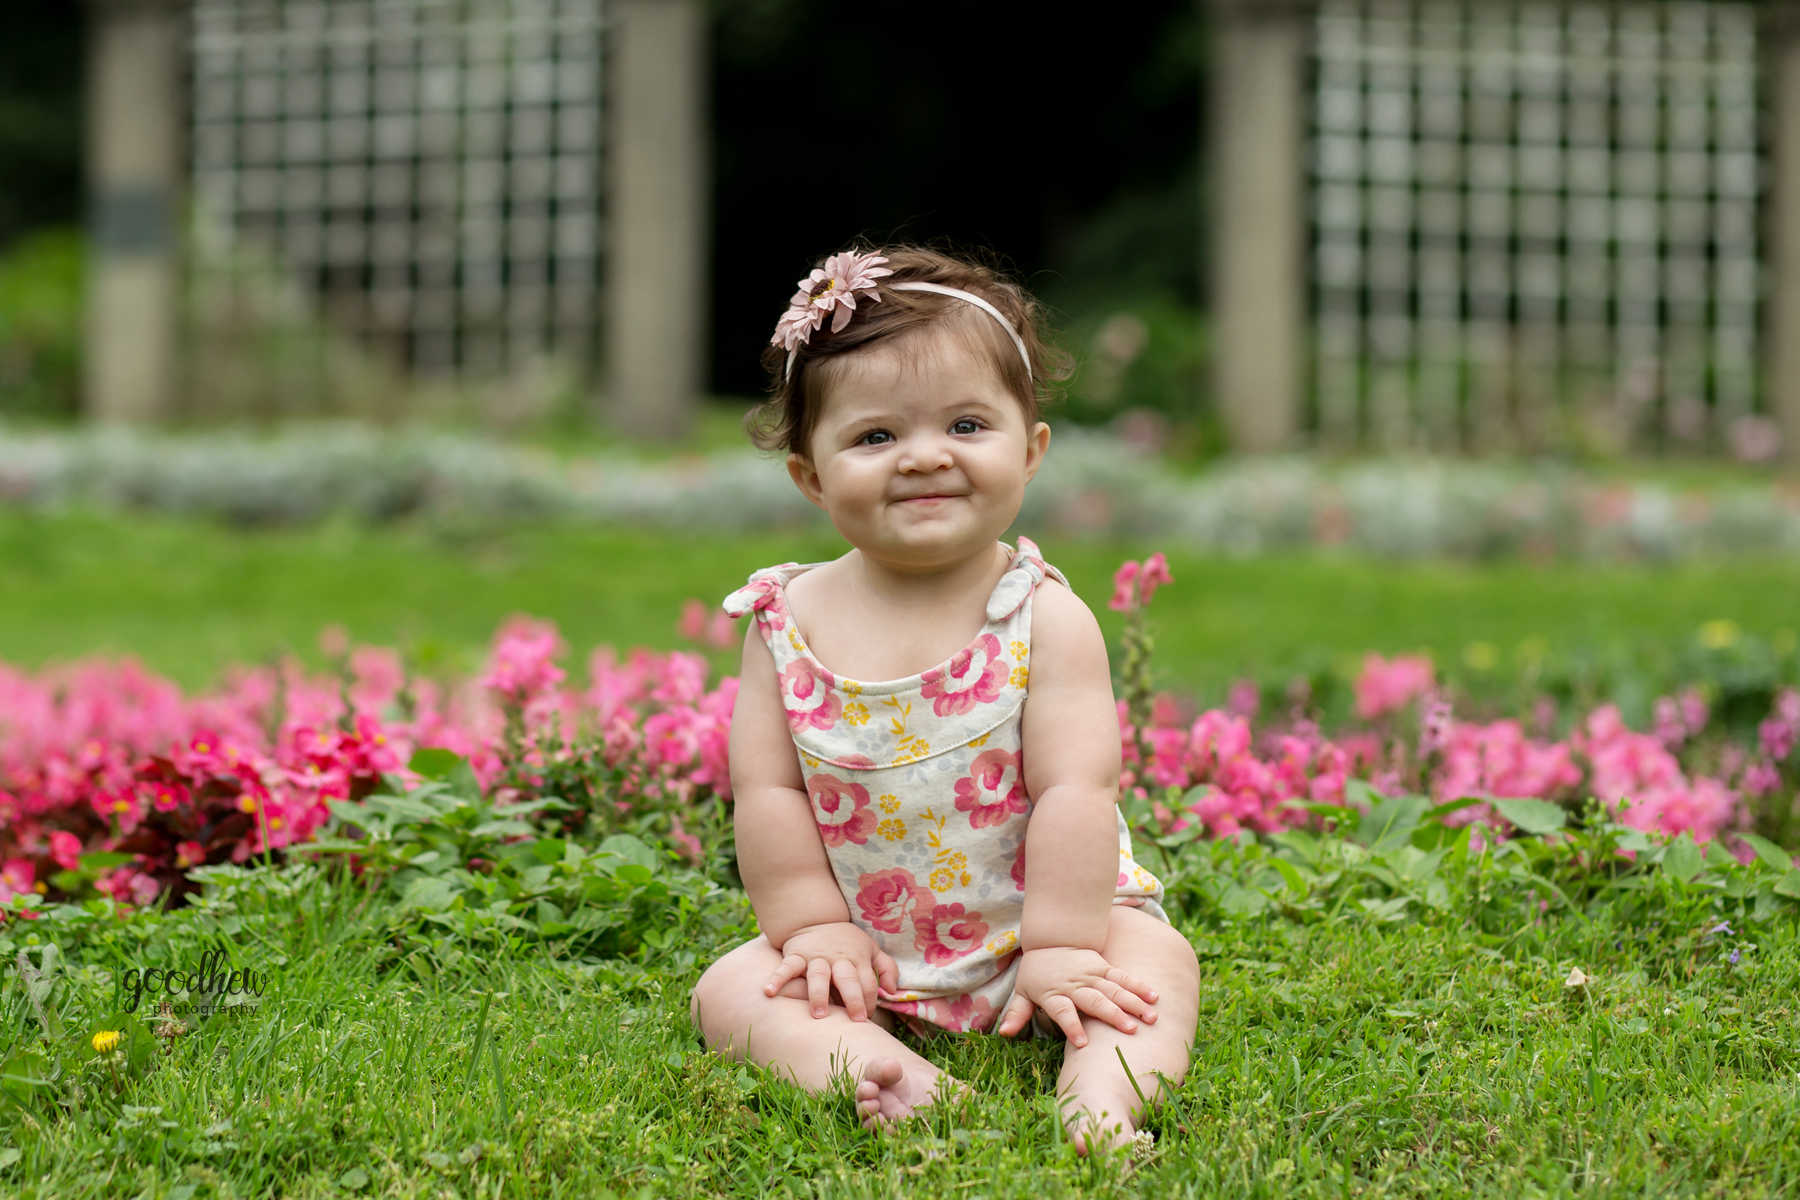 outdoor-girl-ella-sharp-jackson-sitter-milestone-portraits